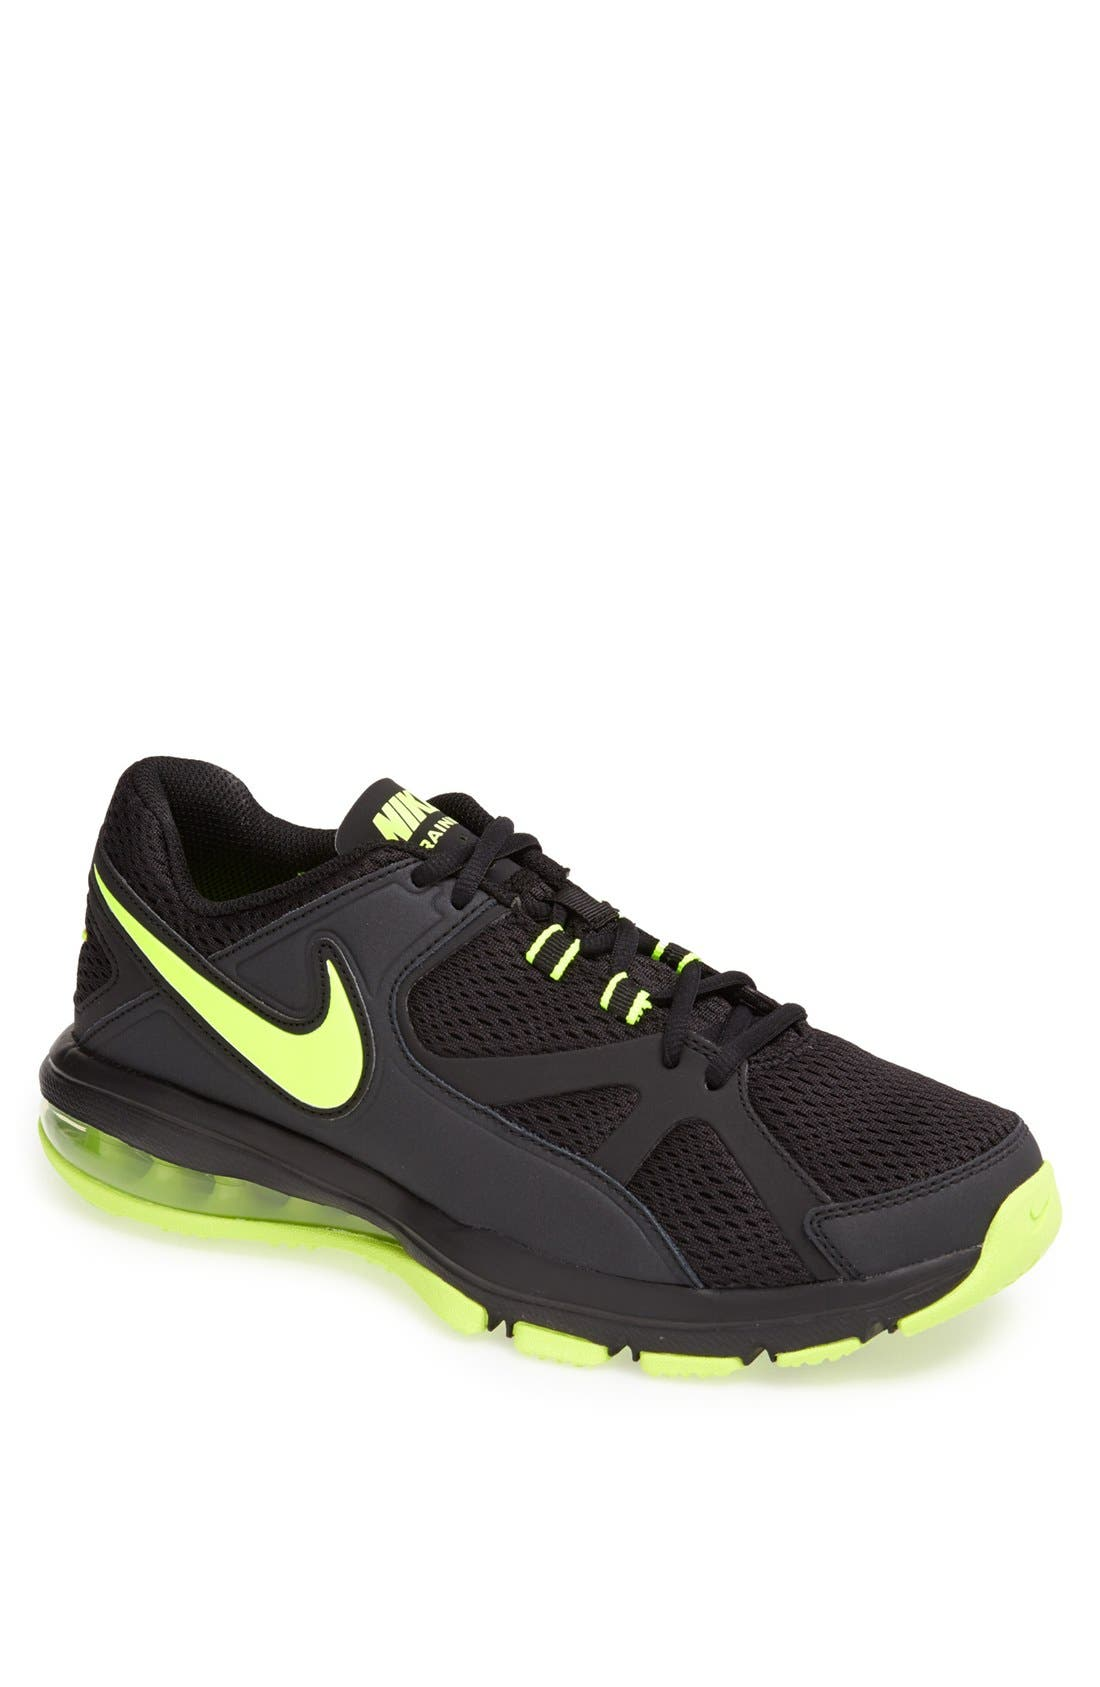 Main Image - Nike 'Air Max Compete TR' Training Shoe (Men)